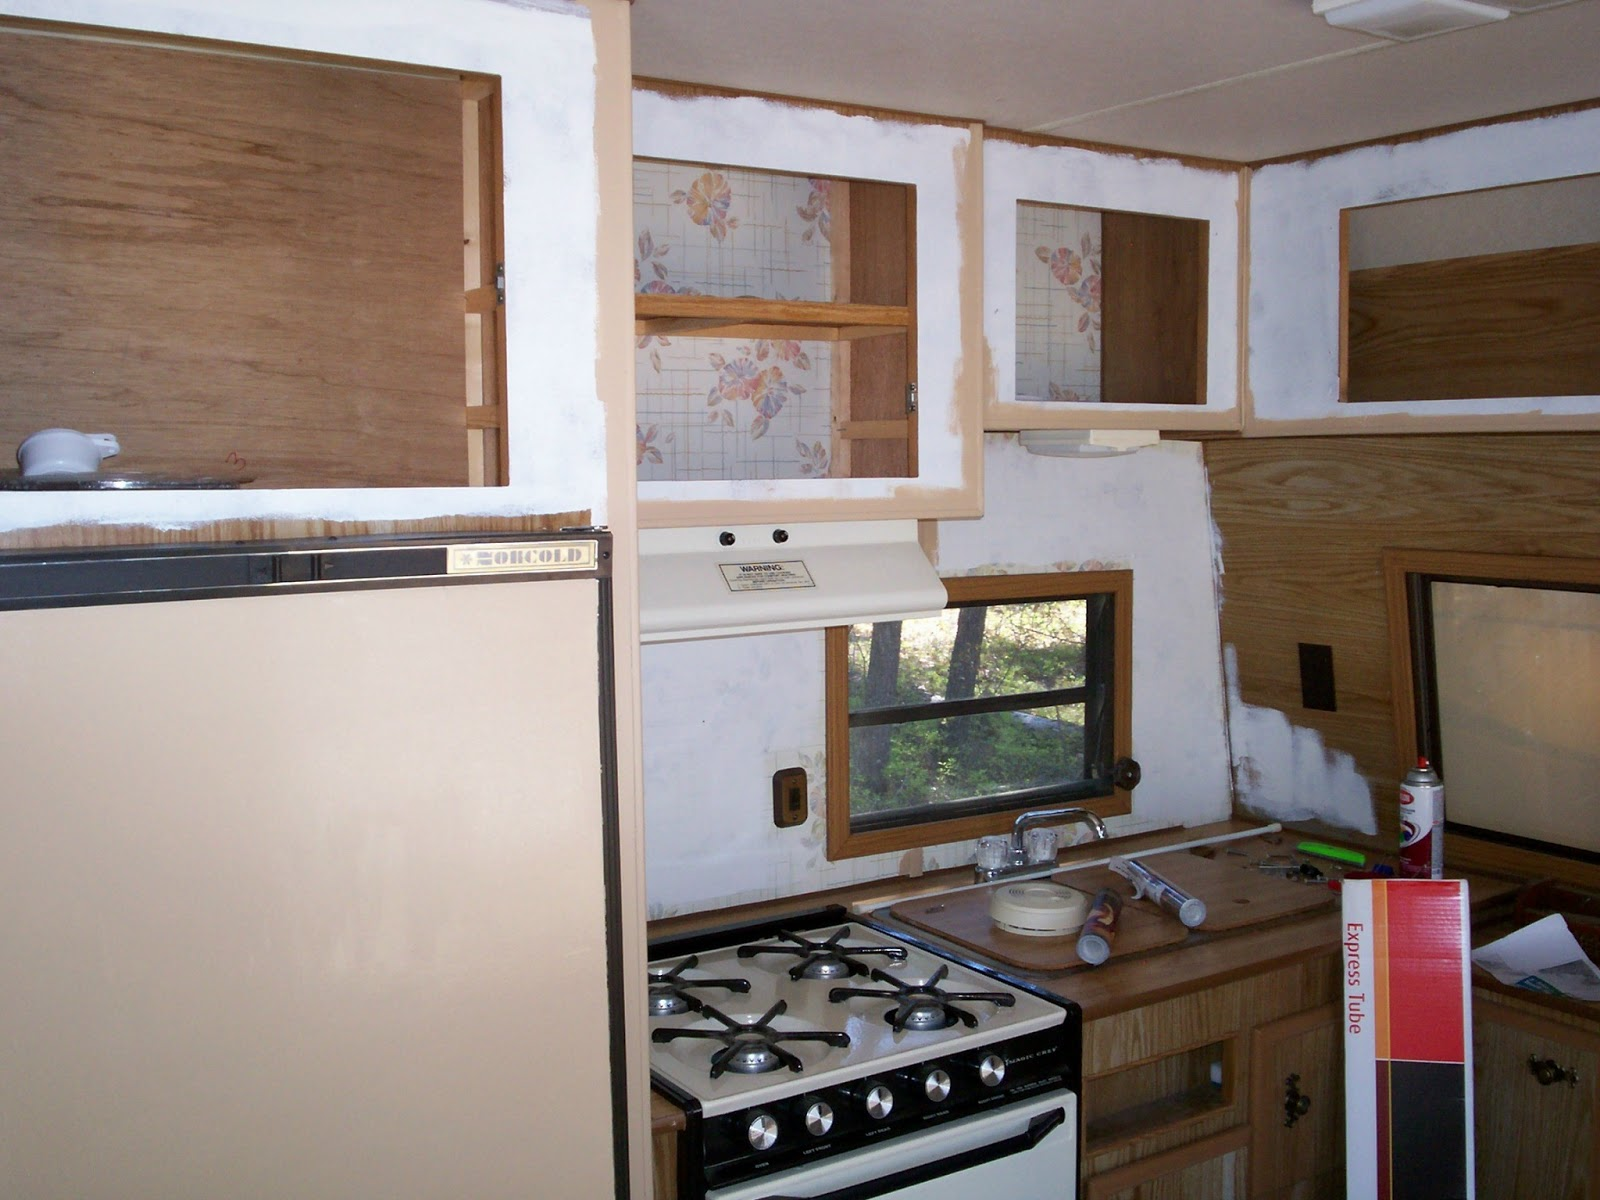 Travel Trailer Renovation: Remodeling a Travel Trailer on travel trailer living room, travel trailer garden, 5th wheel kitchen ideas, travel trailer diy, travel trailer appliances, travel trailer kitchen backsplash, travel trailer kitchen faucets, chateau kitchen ideas, travel trailer home, travel trailer design, pop up camper kitchen ideas, small trailer kitchen ideas, travel trailer bedrooms, teardrop trailer kitchen ideas, travel trailer windows, travel trailer doors, travel trailer kitchen organizing, trailer house kitchen ideas, travel trailer kitchen organization, travel trailer kitchen tips,